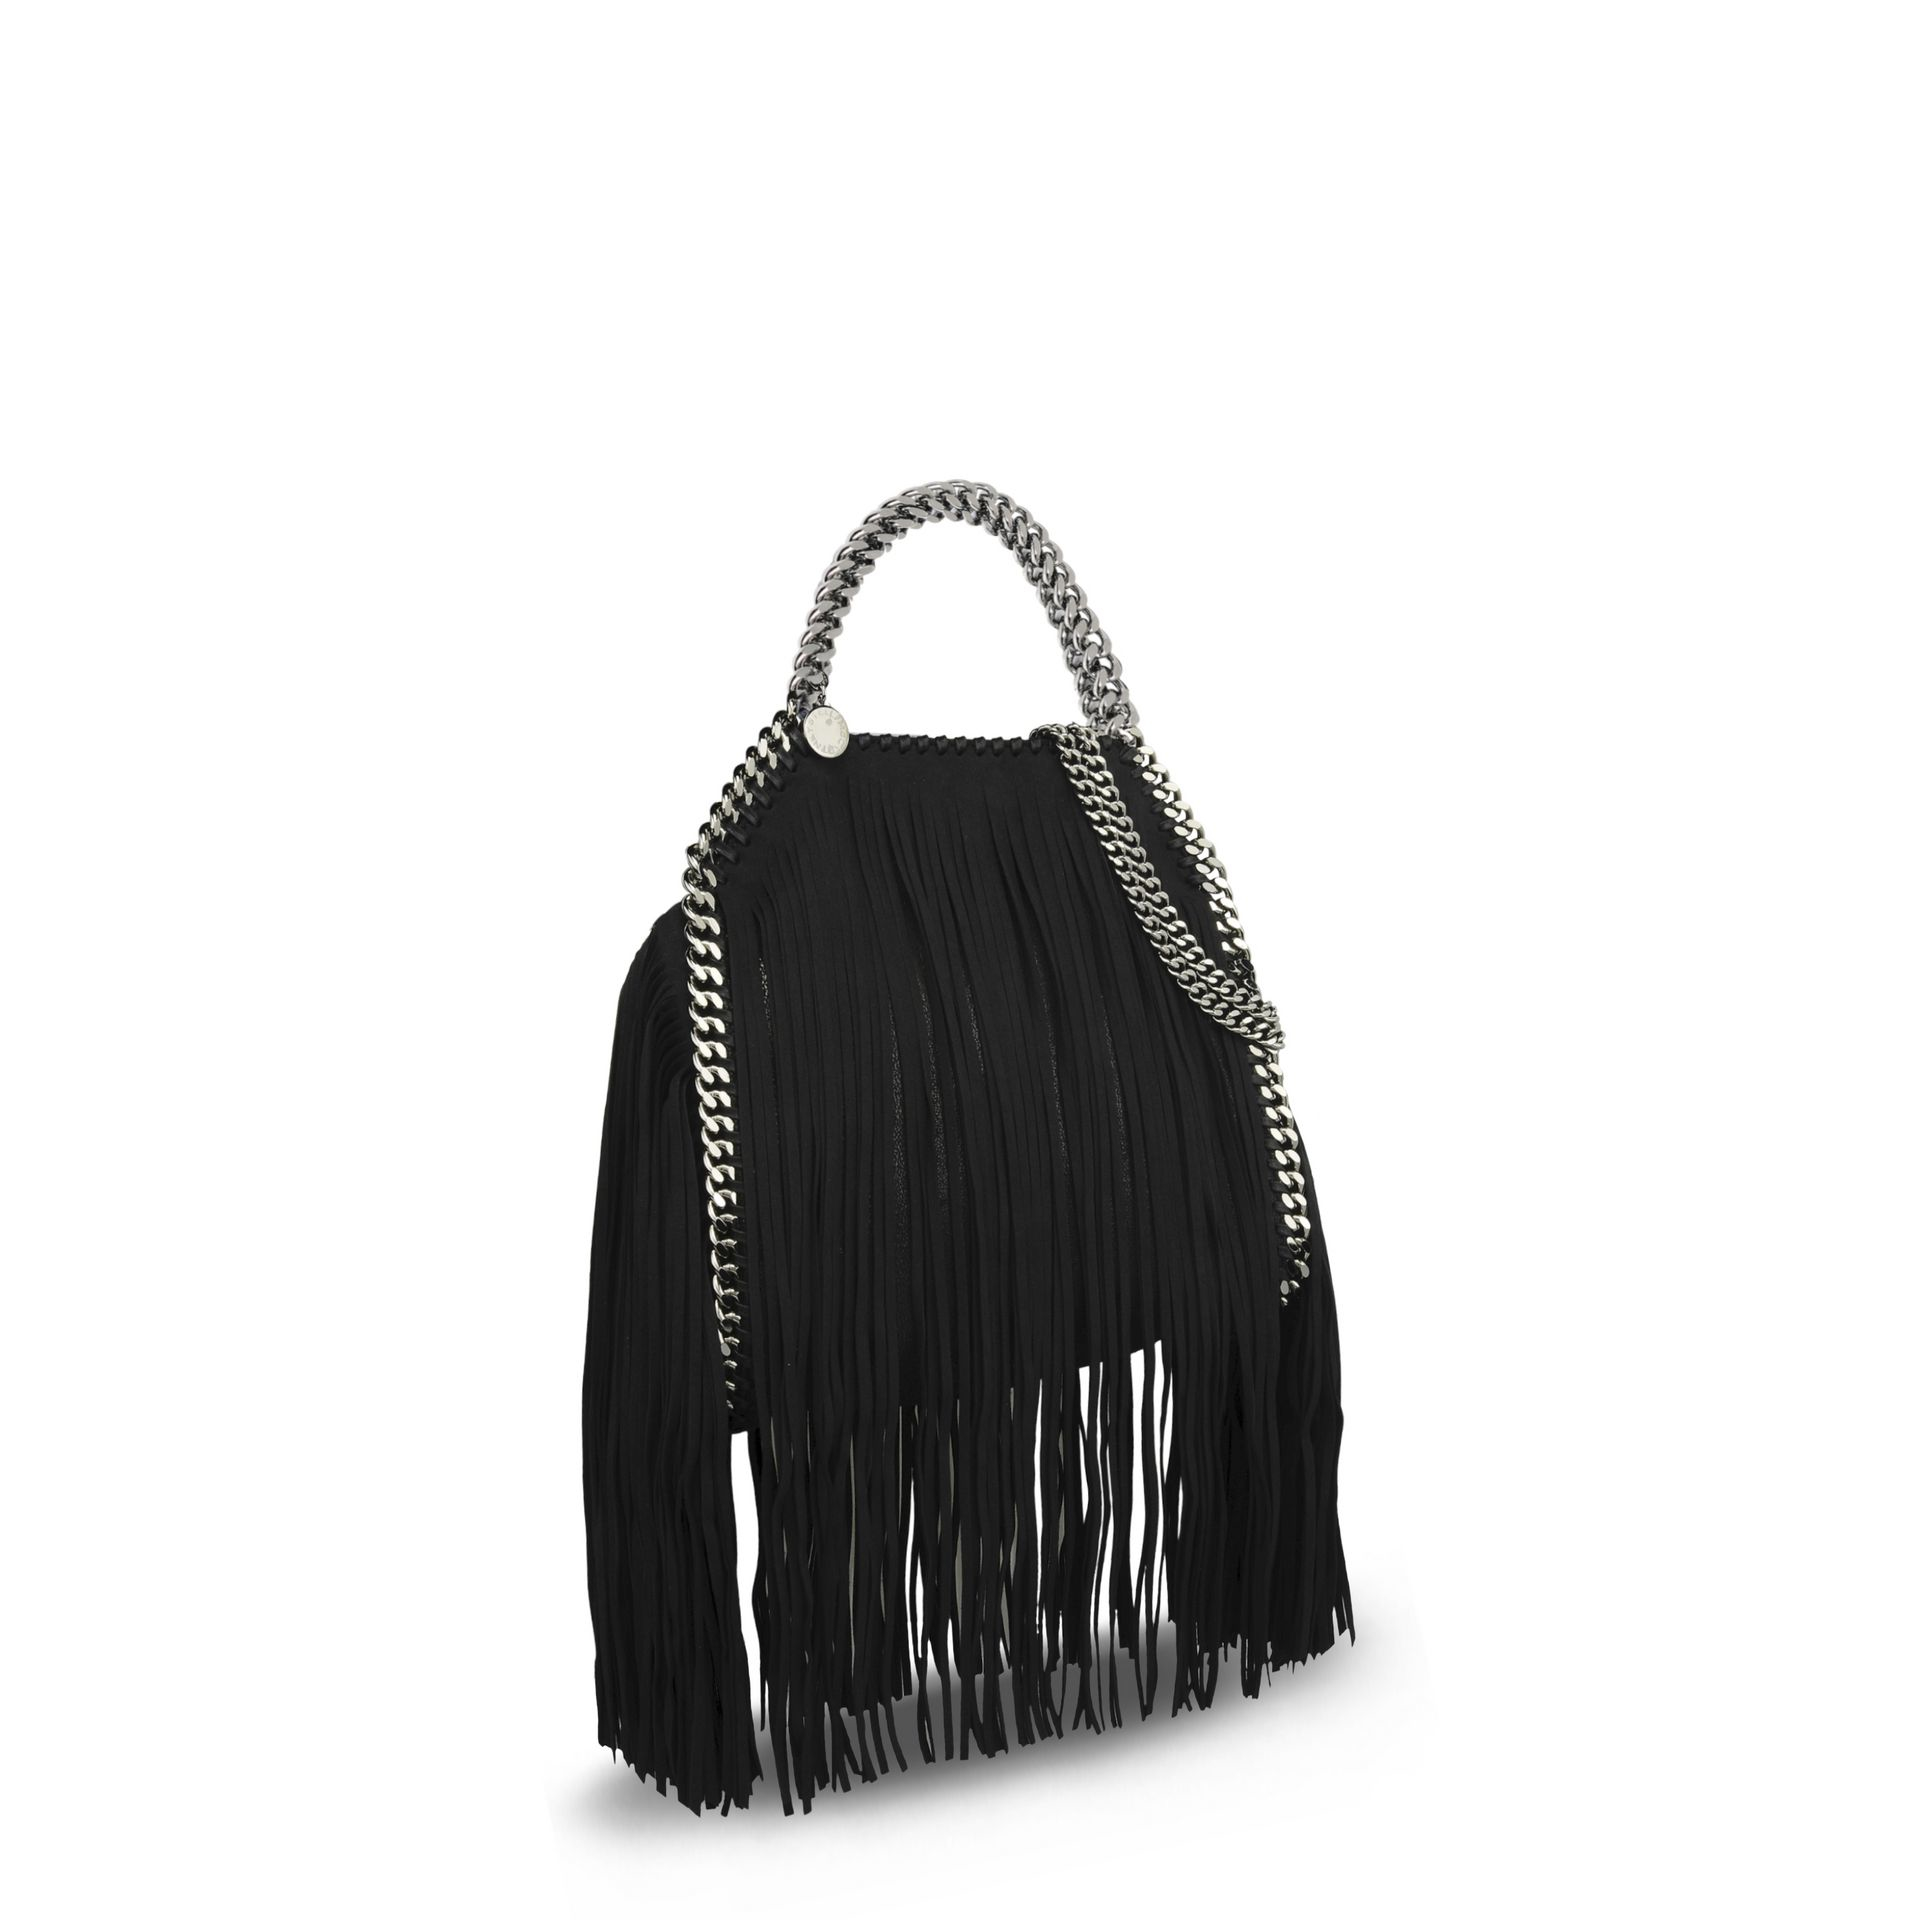 Stella McCartney Black Falabella Shaggy Deer Fringed Mini Tote in ... 379e7c0f24